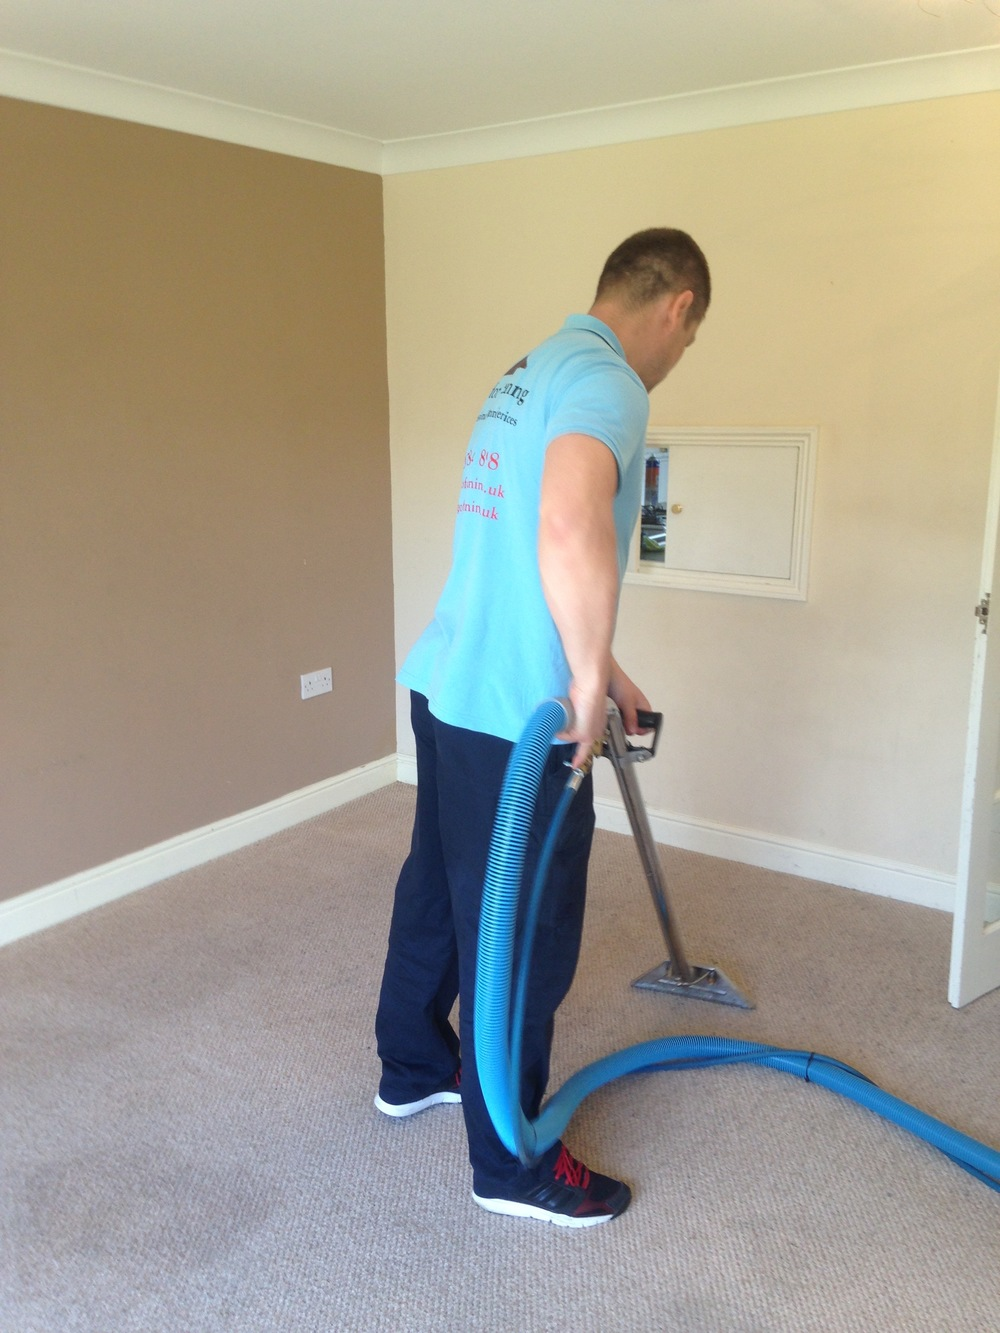 living room carpet cleaner.jpg